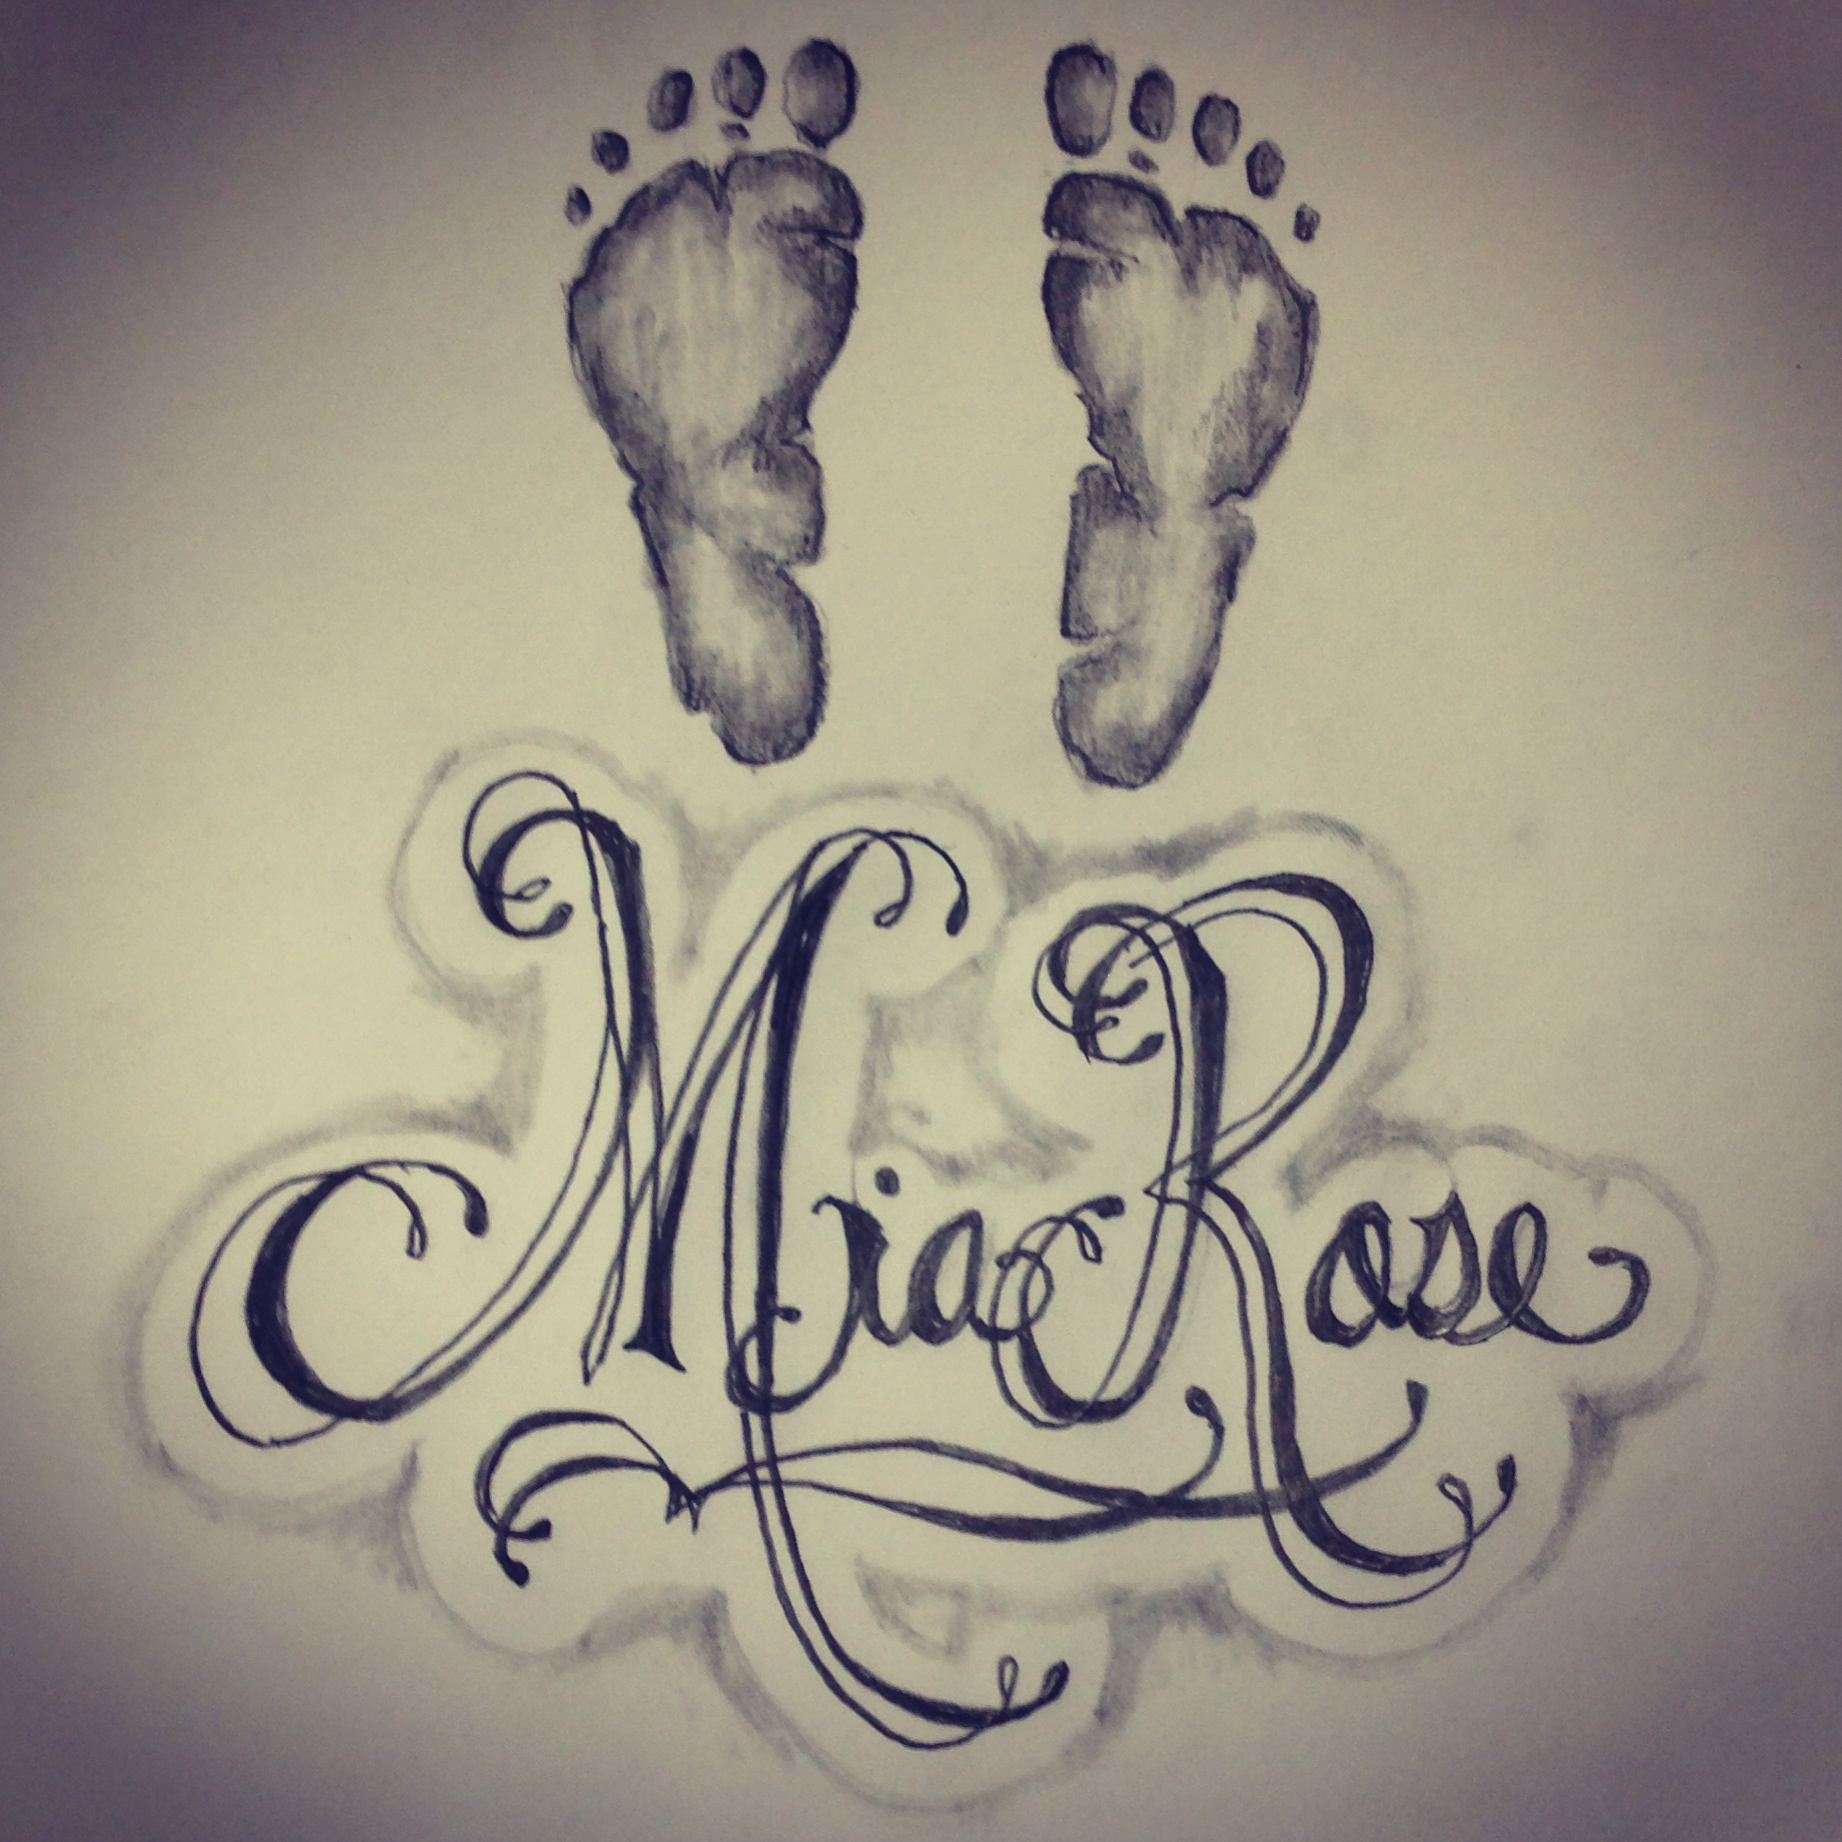 1842x1842 Baby Footprints Name Tattoo Sketch Requested From A Client